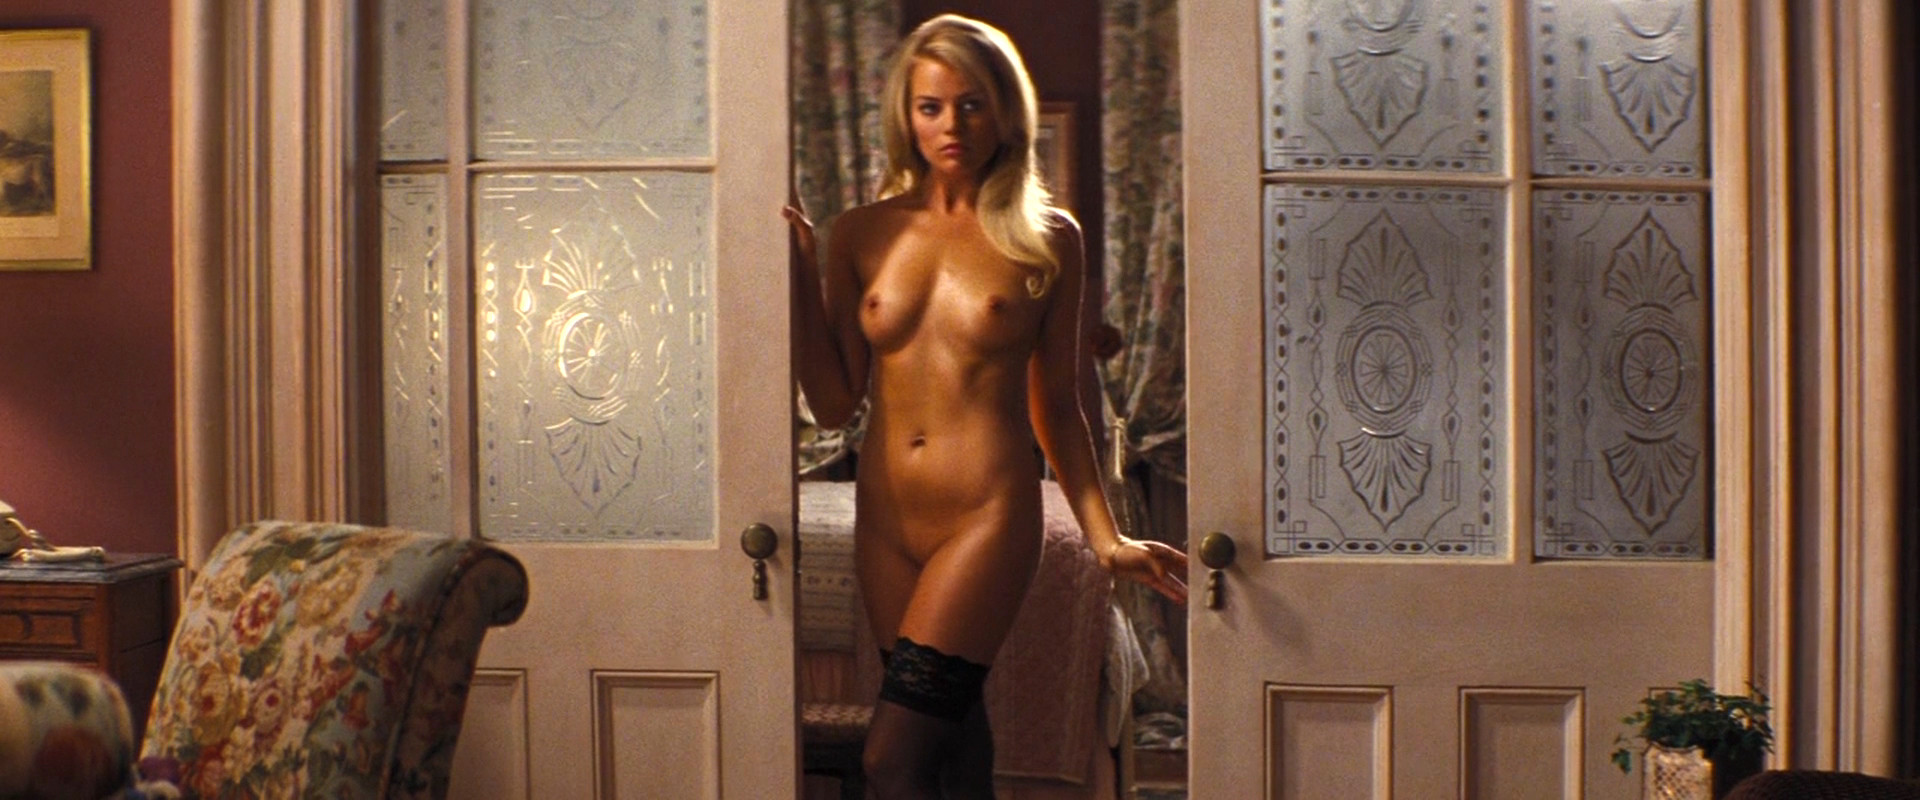 margot robbie wolf of wall street naked